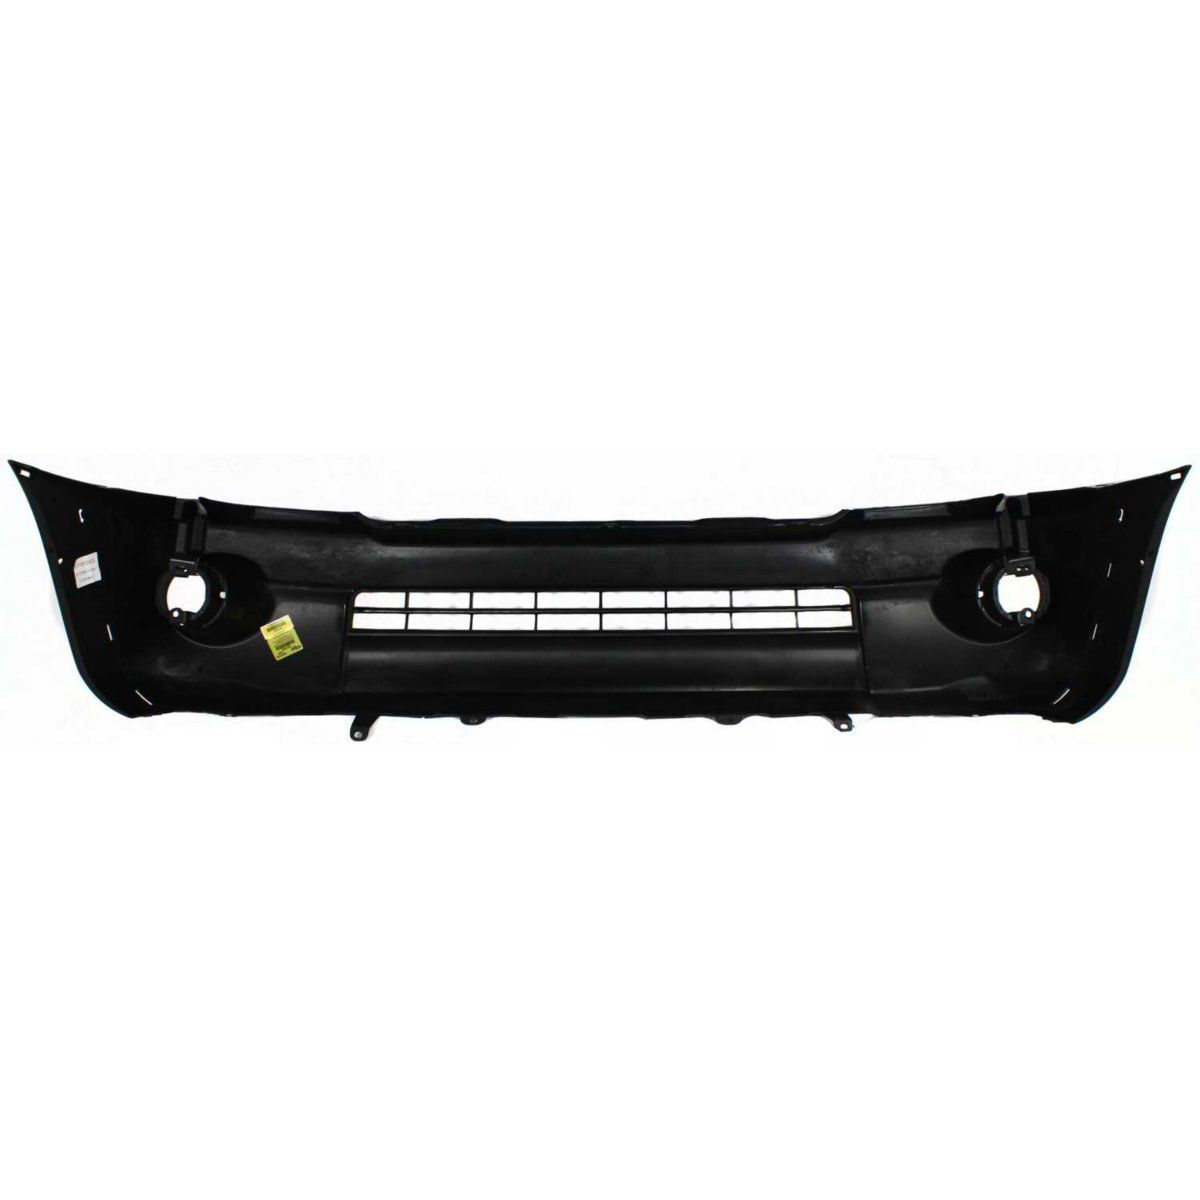 2005-2011 TOYOTA TACOMA Front Bumper Cover BASE|PRERUNNER (4.0L)  PRERUNNER (2.7L)  4WD Painted to Match